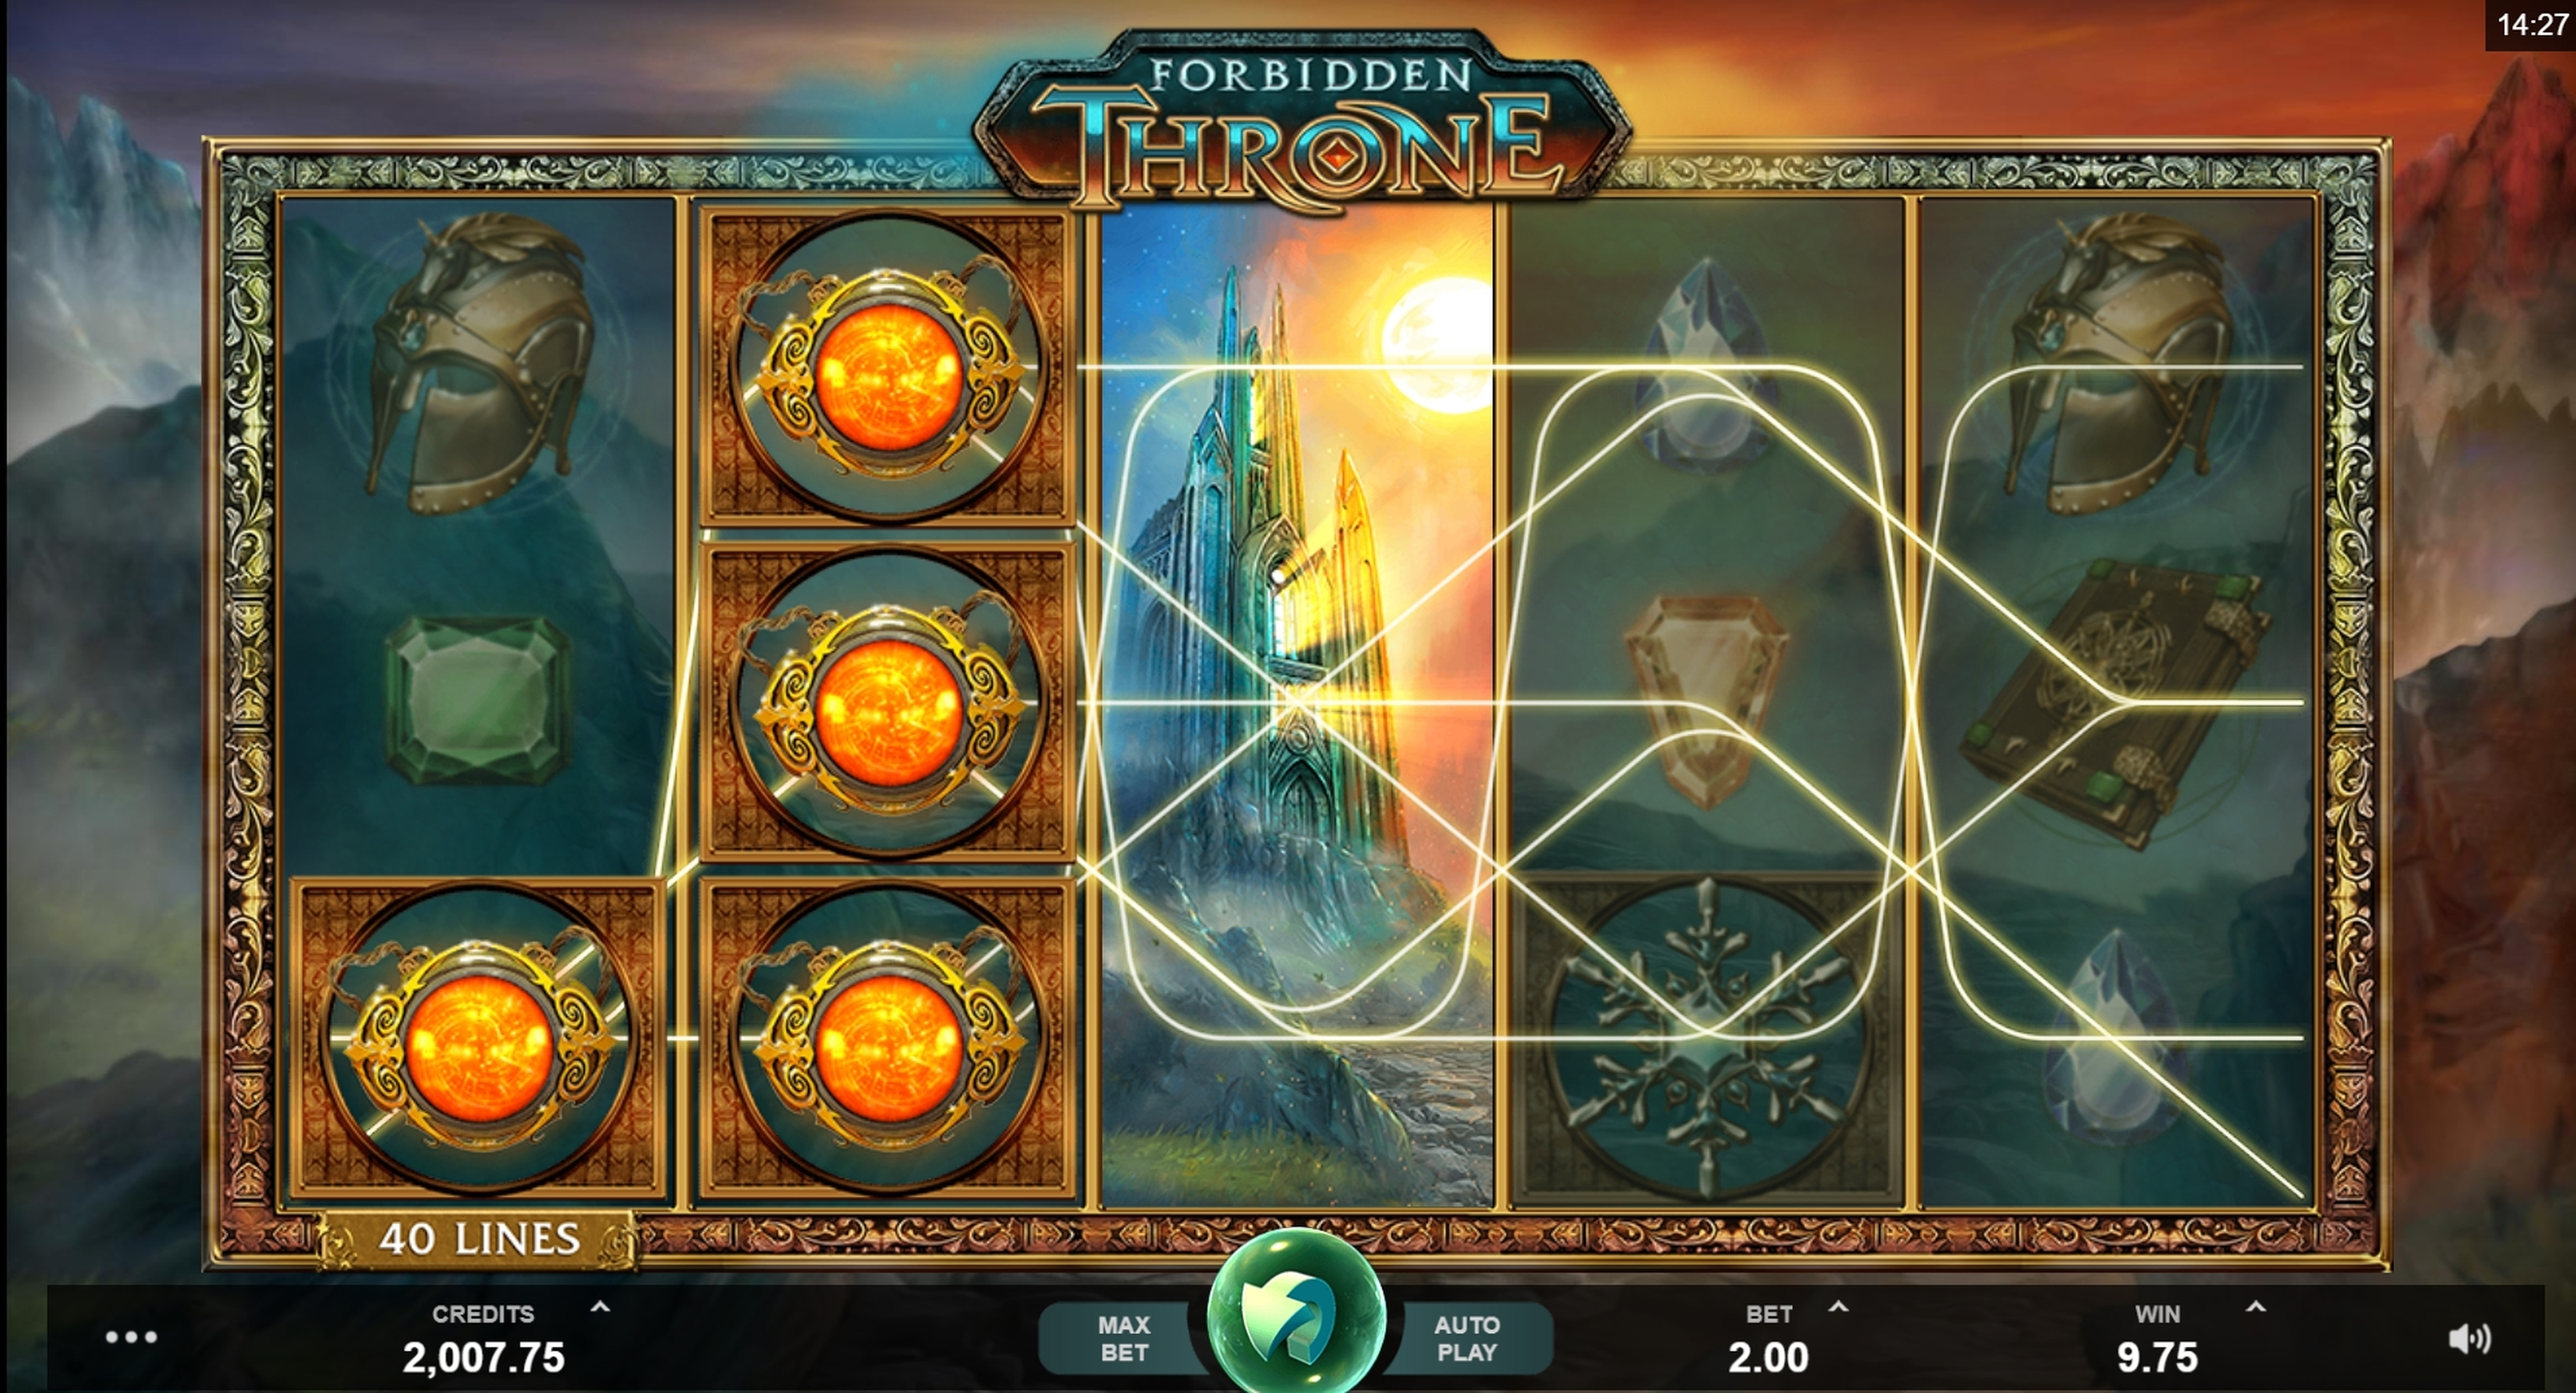 Win Money in Forbidden Throne Free Slot Game by MahiGaming